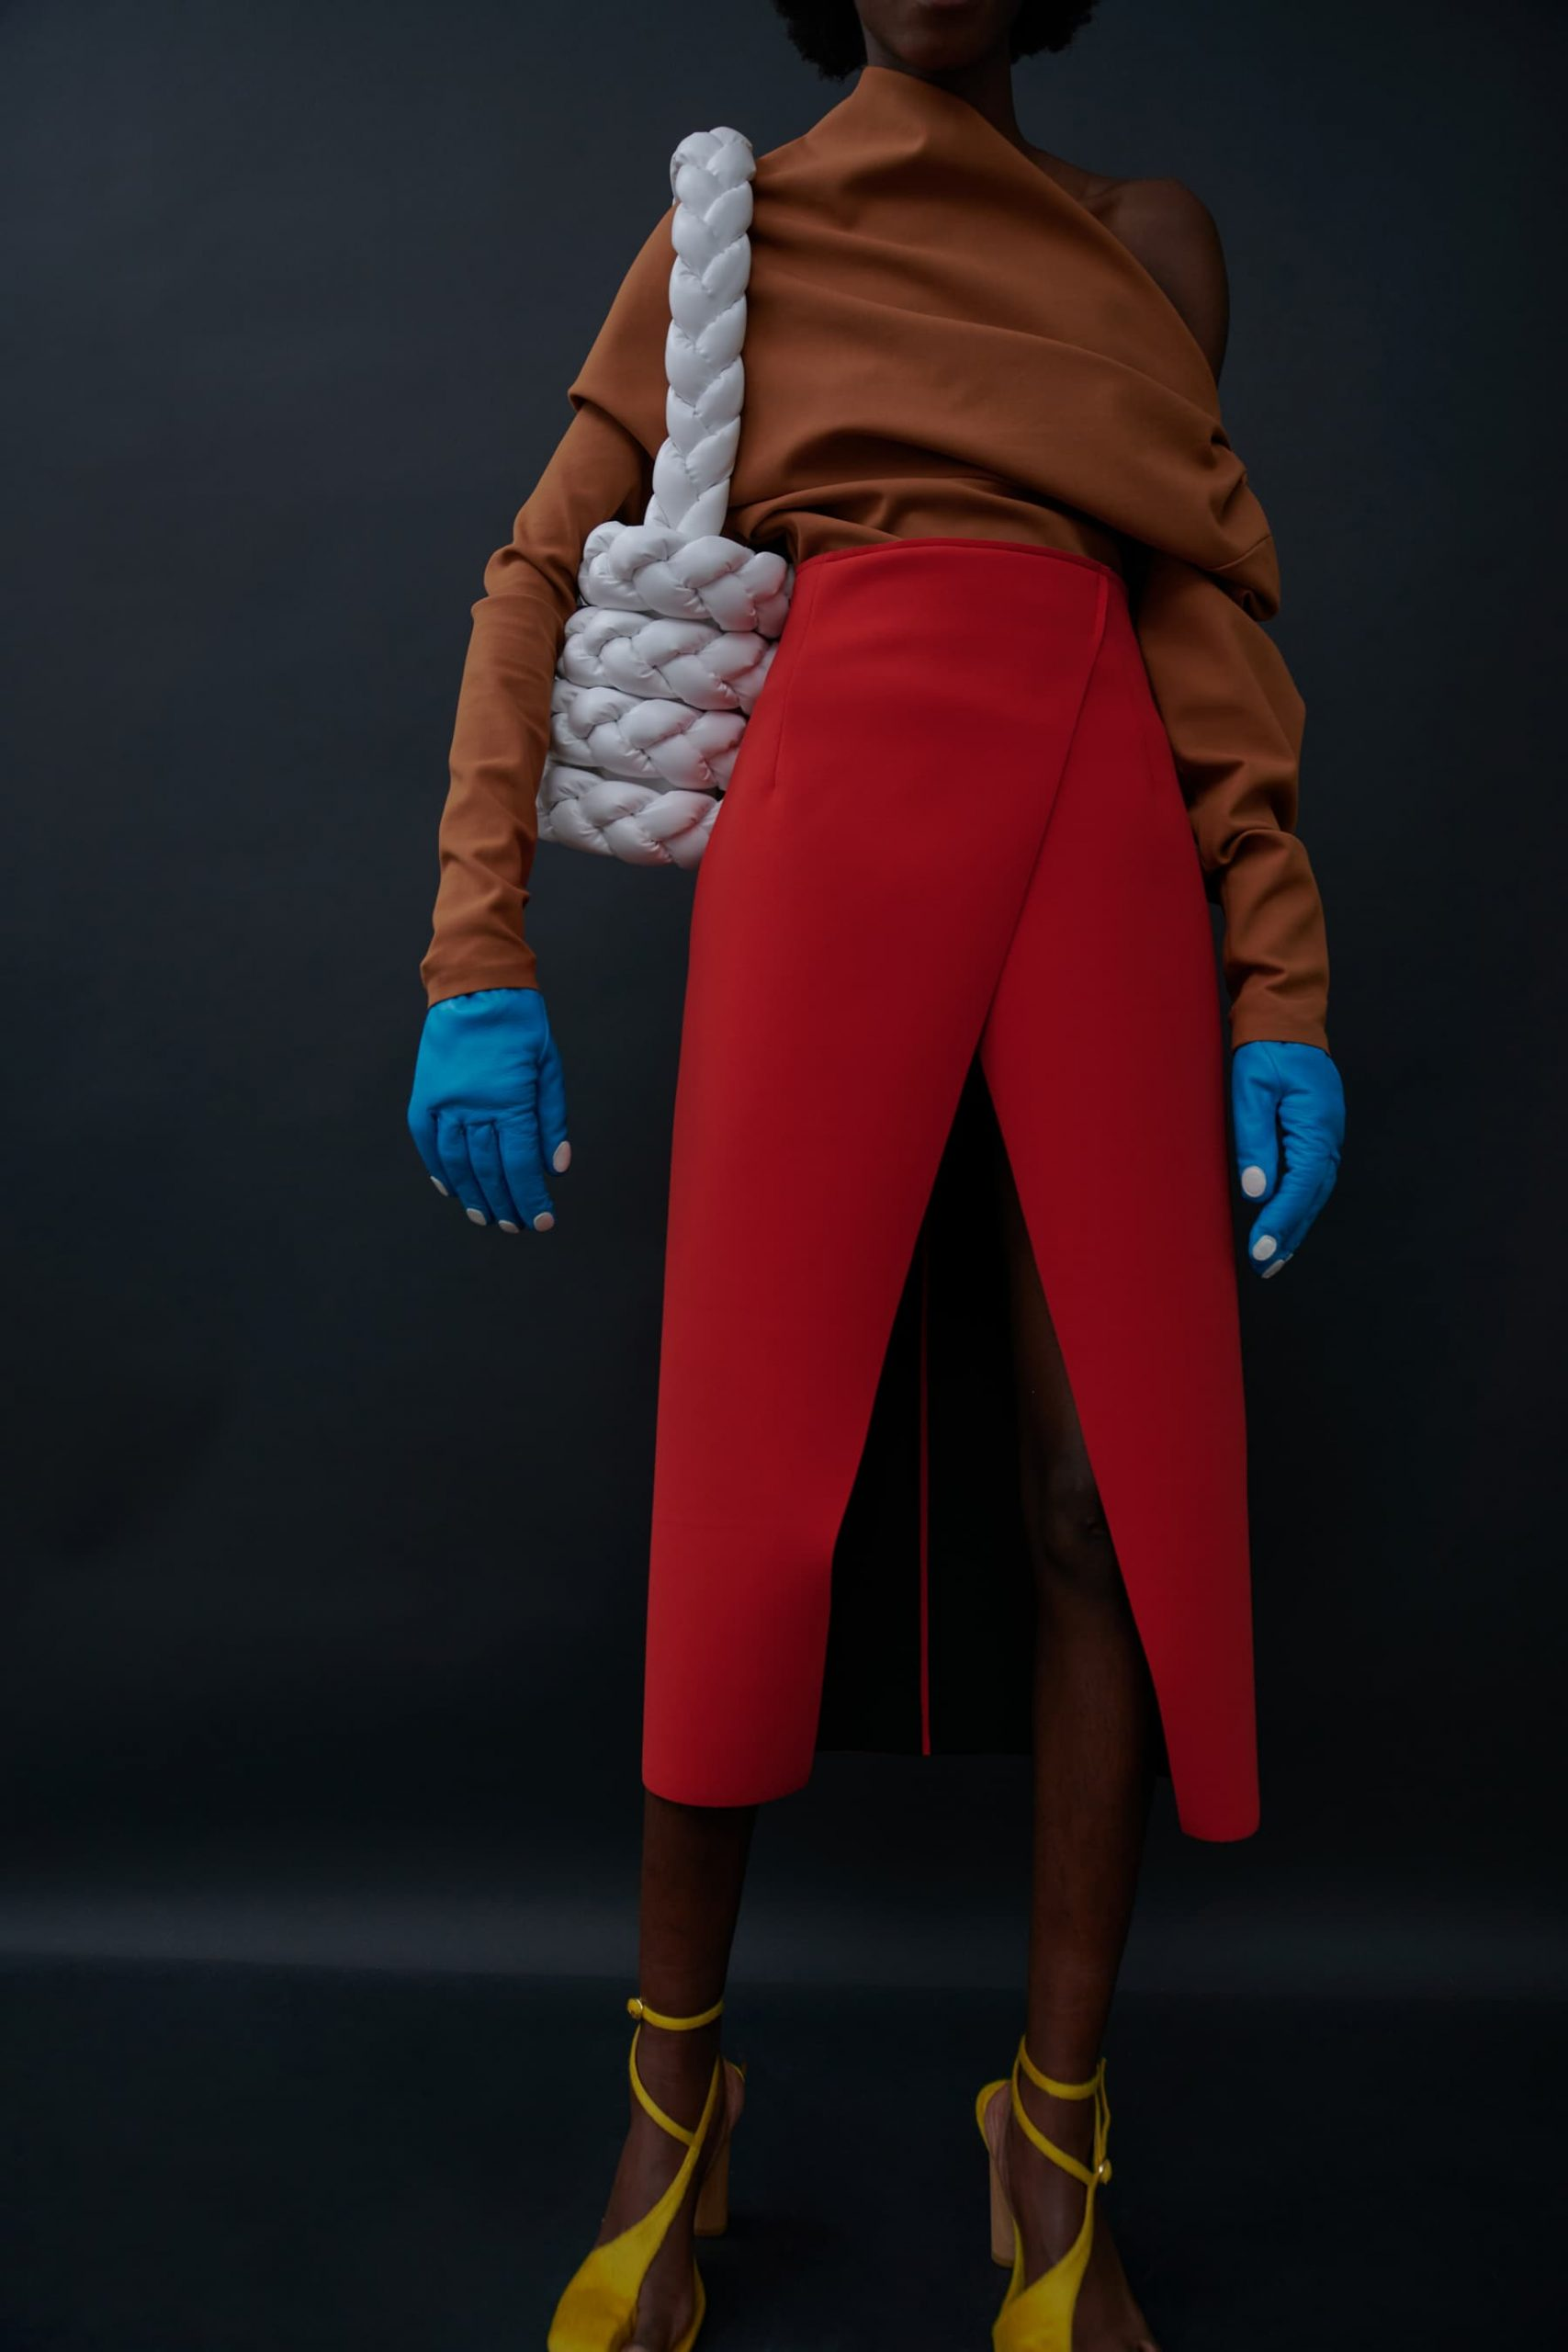 Long Sleeves & Gloves Fall 2021 Fashion Trend